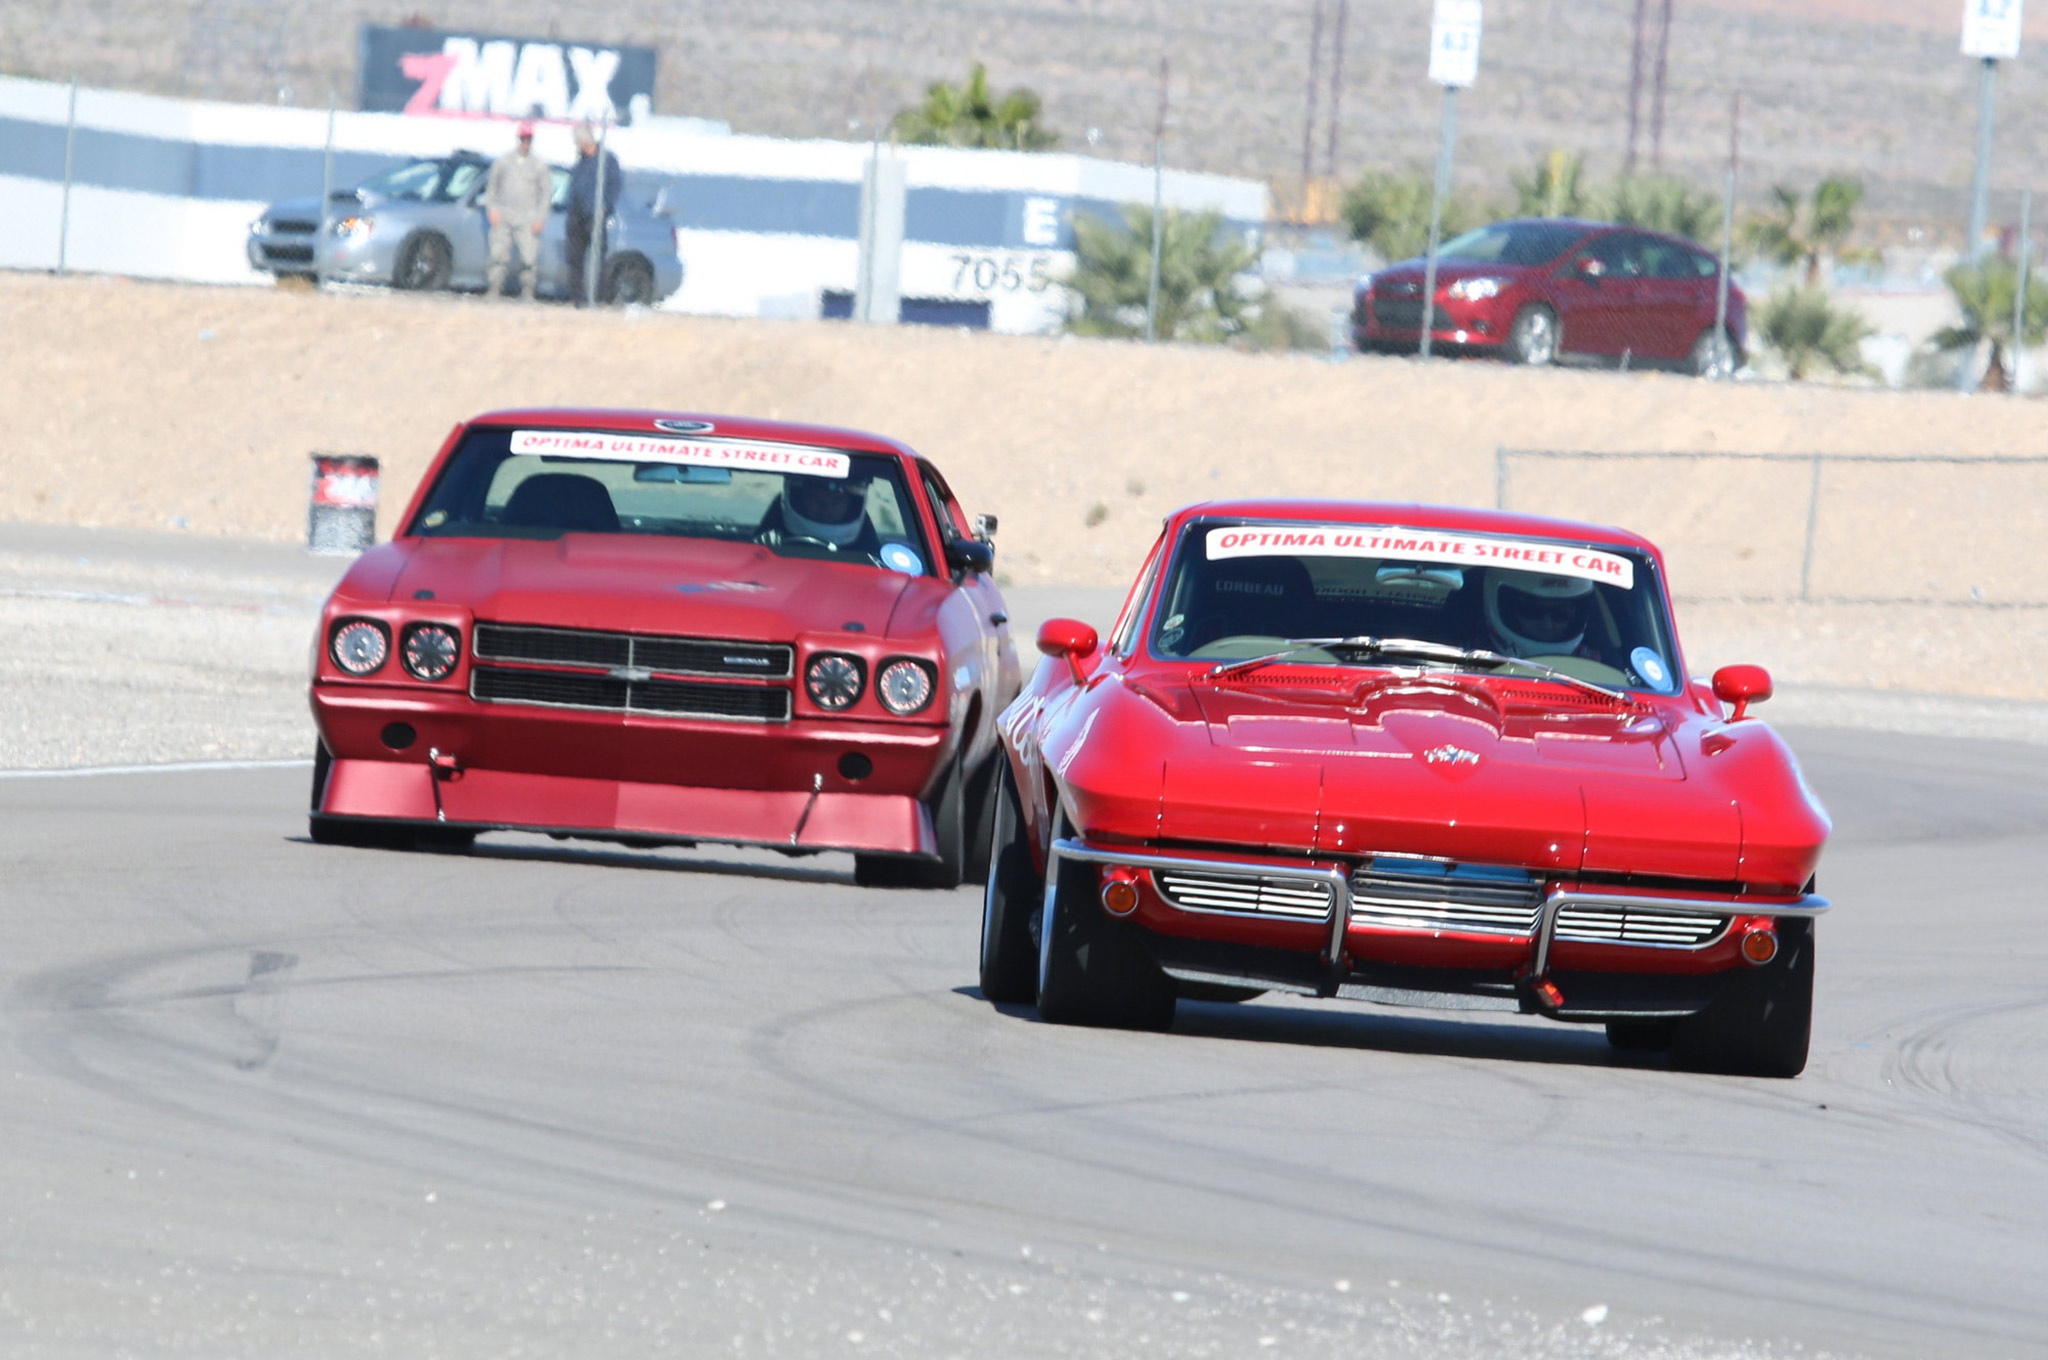 Greg Thurmond's incredible 1964 Corvette, Scar, was located in the K&N Filters booth at SEMA and was one of ten vehicles selected from the show to compete in the OUSCI.